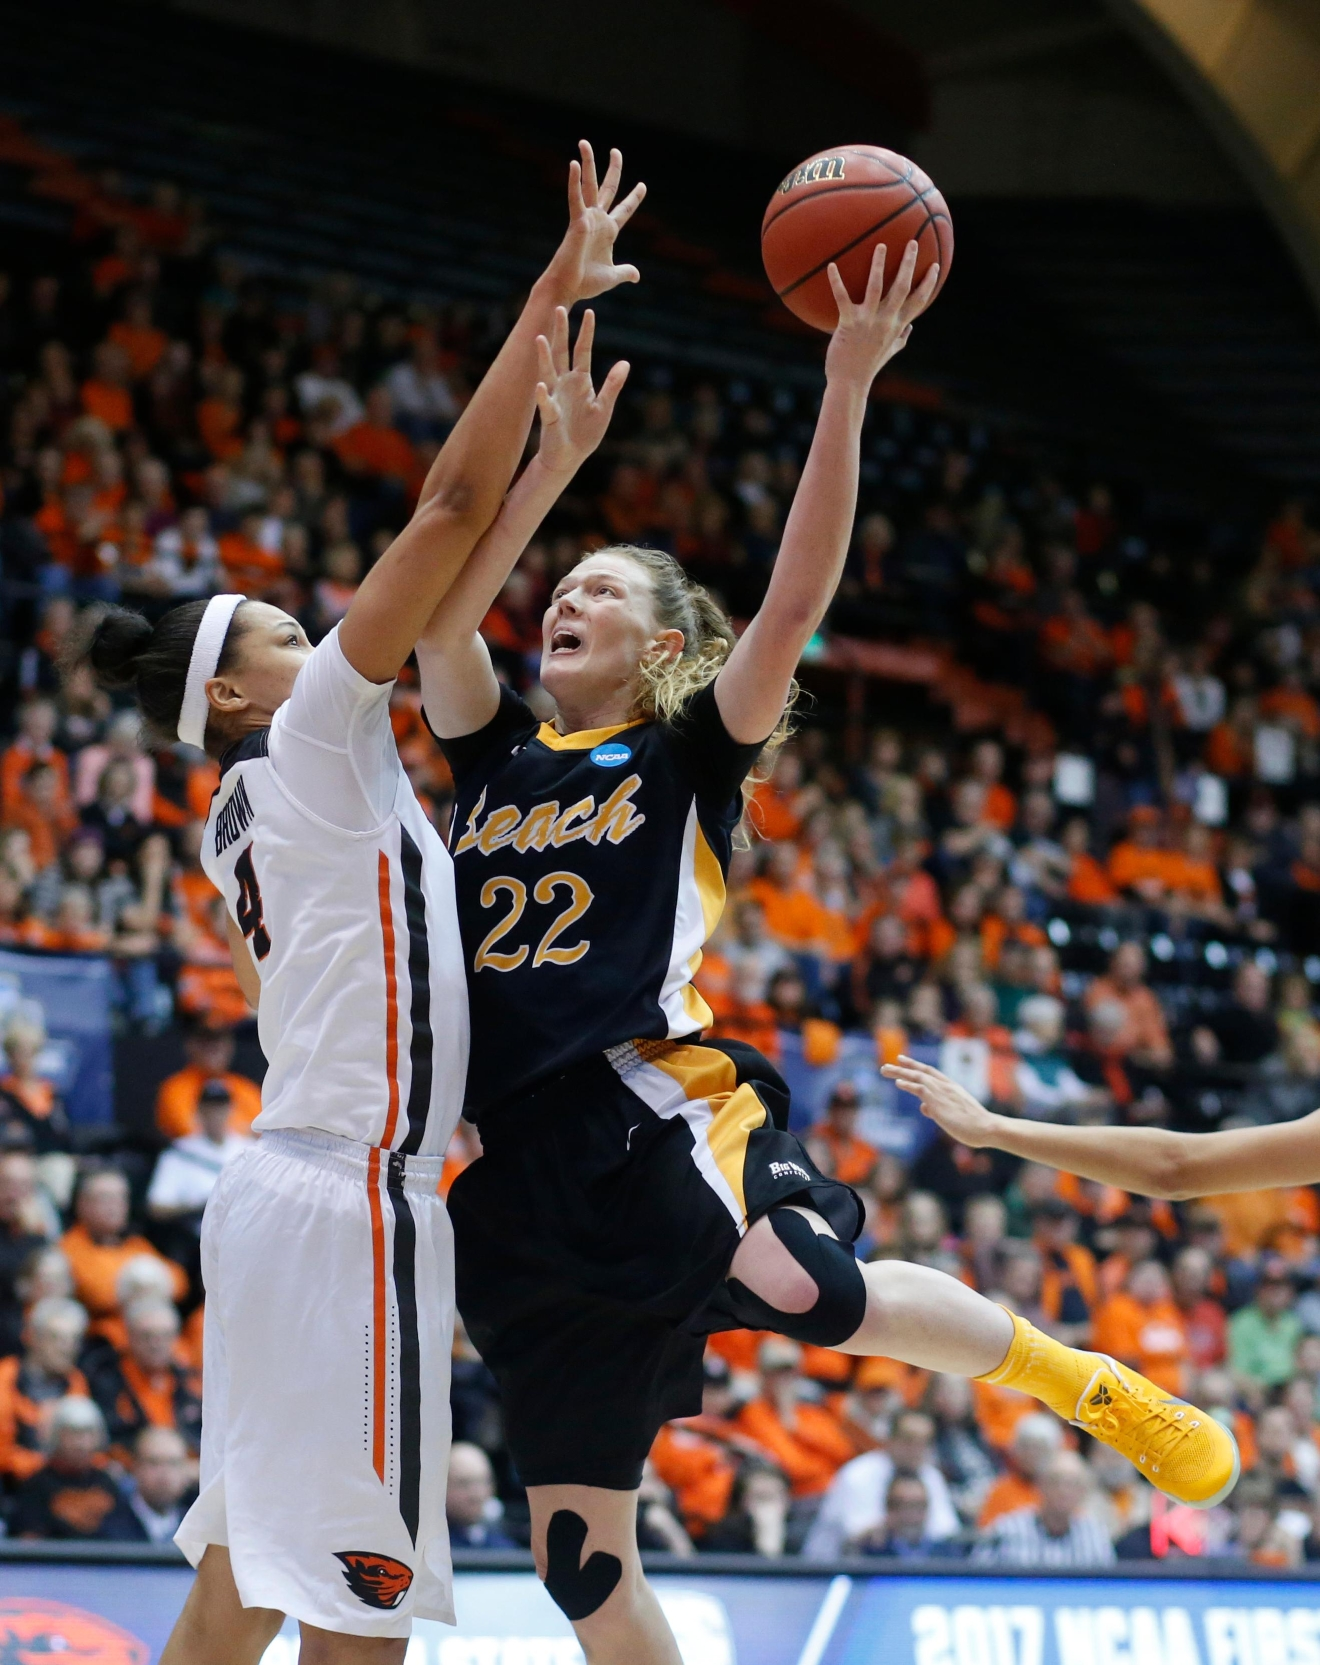 Long Beach State's Madison Montgomery (22) shoots past Oregon State's Breanna Brown during the first half in a first-round game in the women's NCAA college basketball tournament Friday, March 17, 2017, in Corvallis, Ore. (AP Photo/Timothy J. Gonzalez)